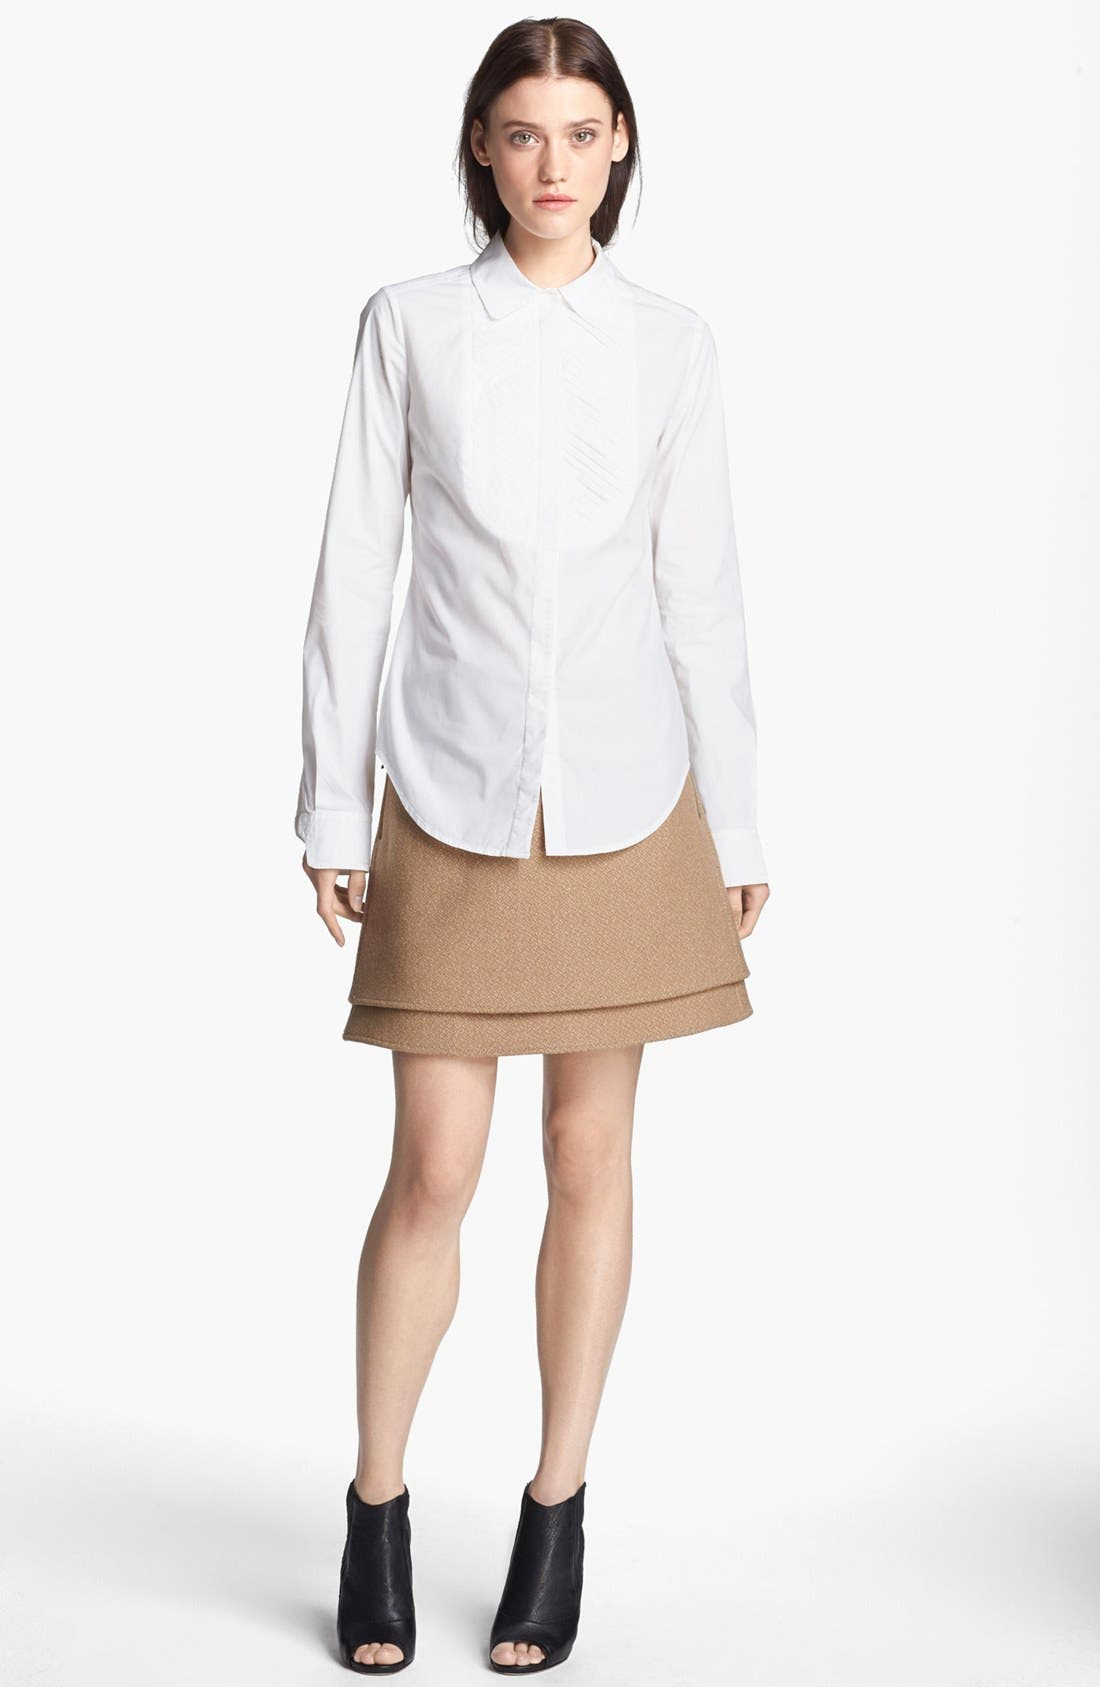 Alternate Image 1 Selected - Rachel Zoe 'Beatrice' Pleated Blouse